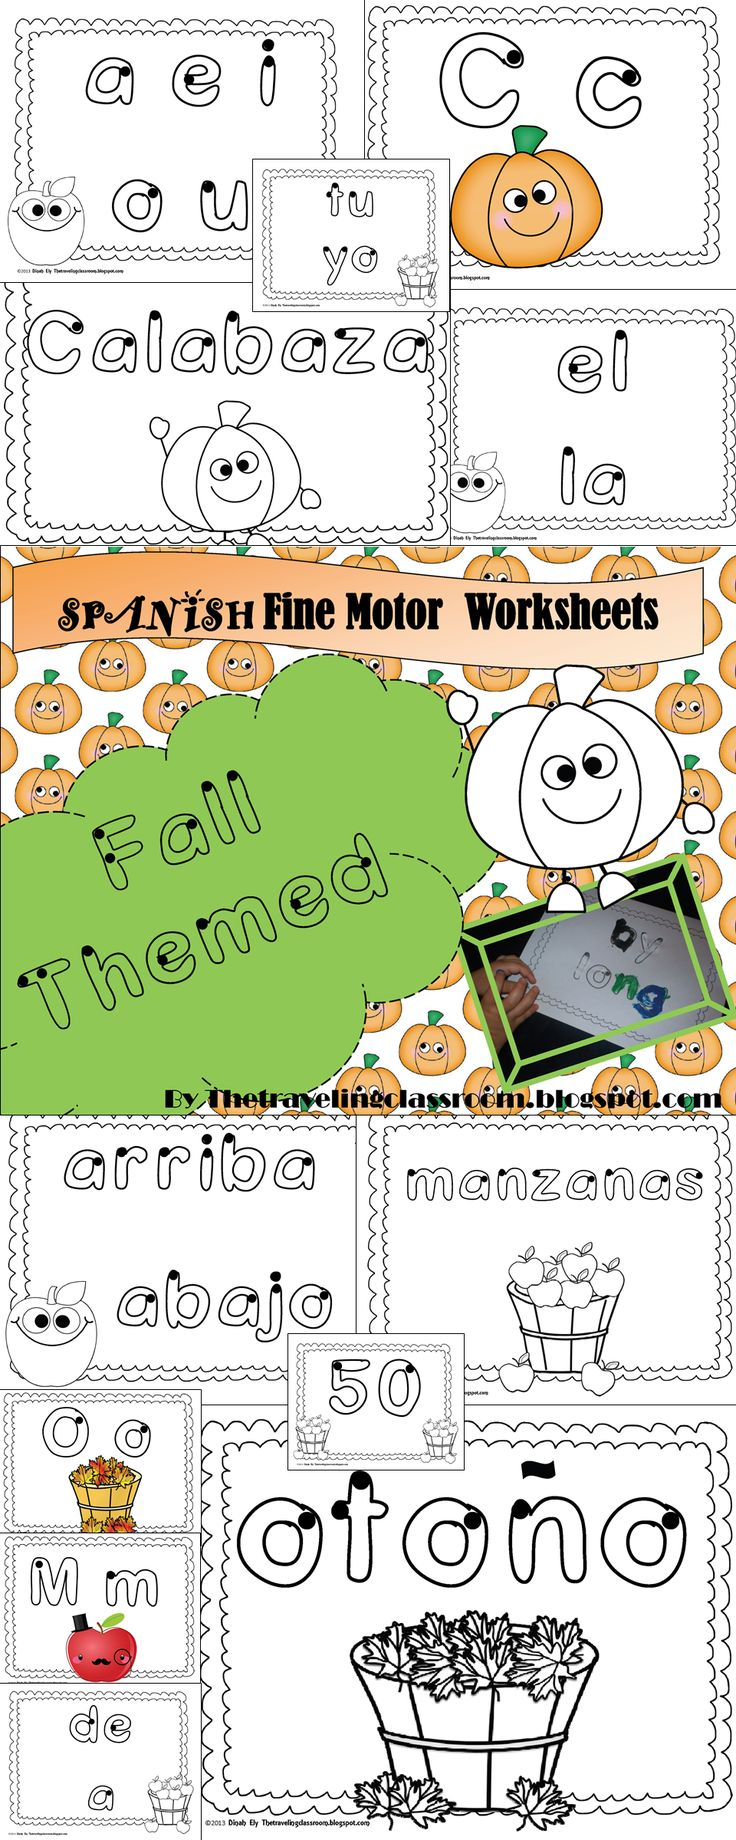 Workbooks weather expressions in spanish worksheets : 97 best Weather/El tiempo & Seasons/ Las Estaciones images on ...